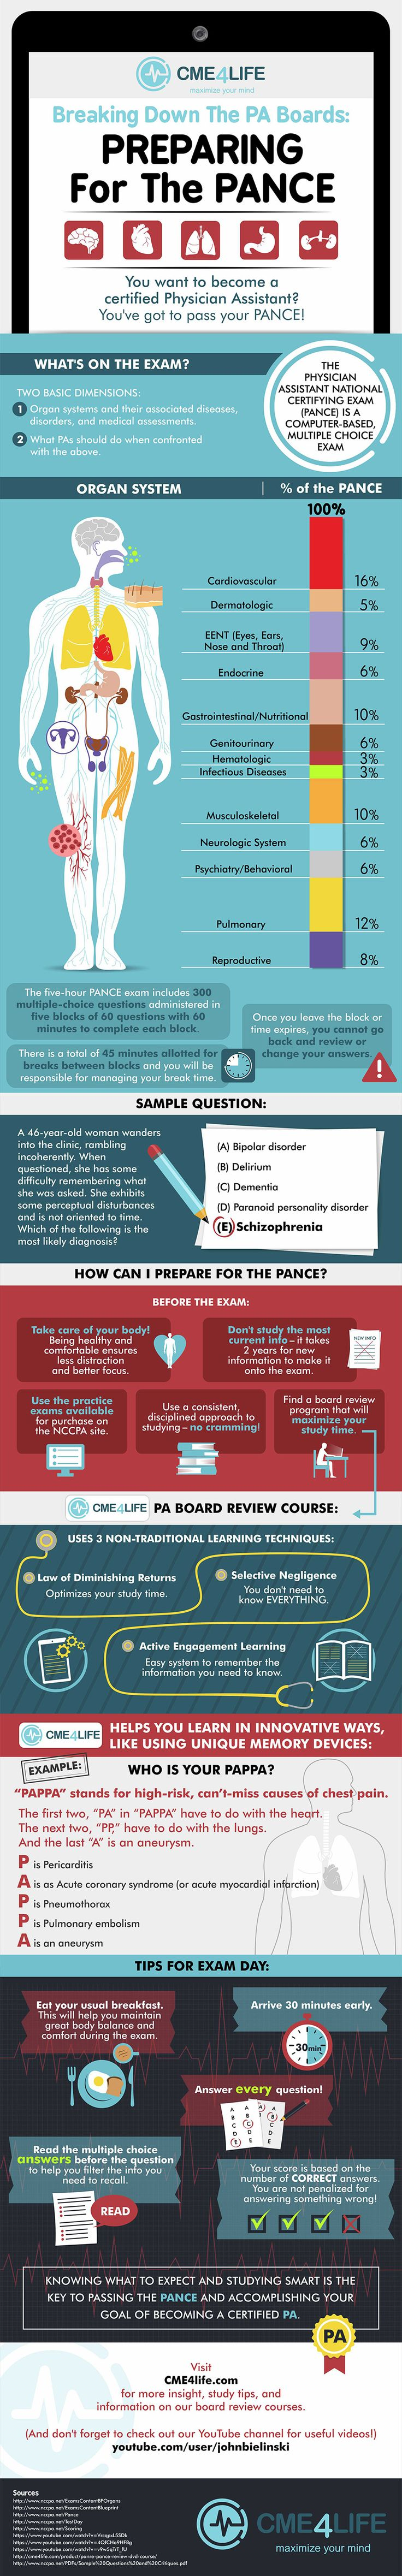 How To Prepare For The PA Boards: PANCE Tips, Insight & Solid Board Review | CME4LIFE